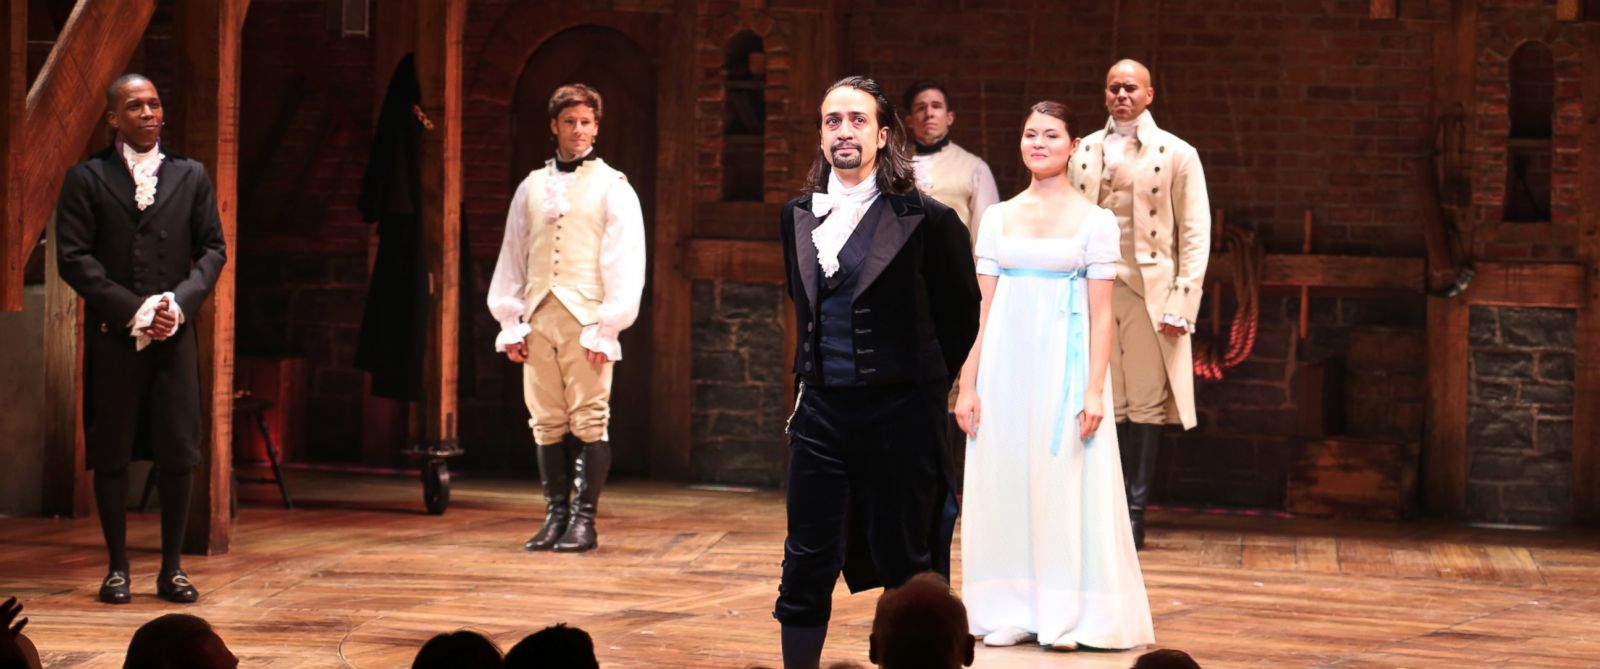 """PHOTO: Lin-Manuel Miranda with the cast during the Broadway opening night performance of """"Hamilton"""" at the Richard Rodgers Theatre, Aug. 6, 2015 in New York City."""